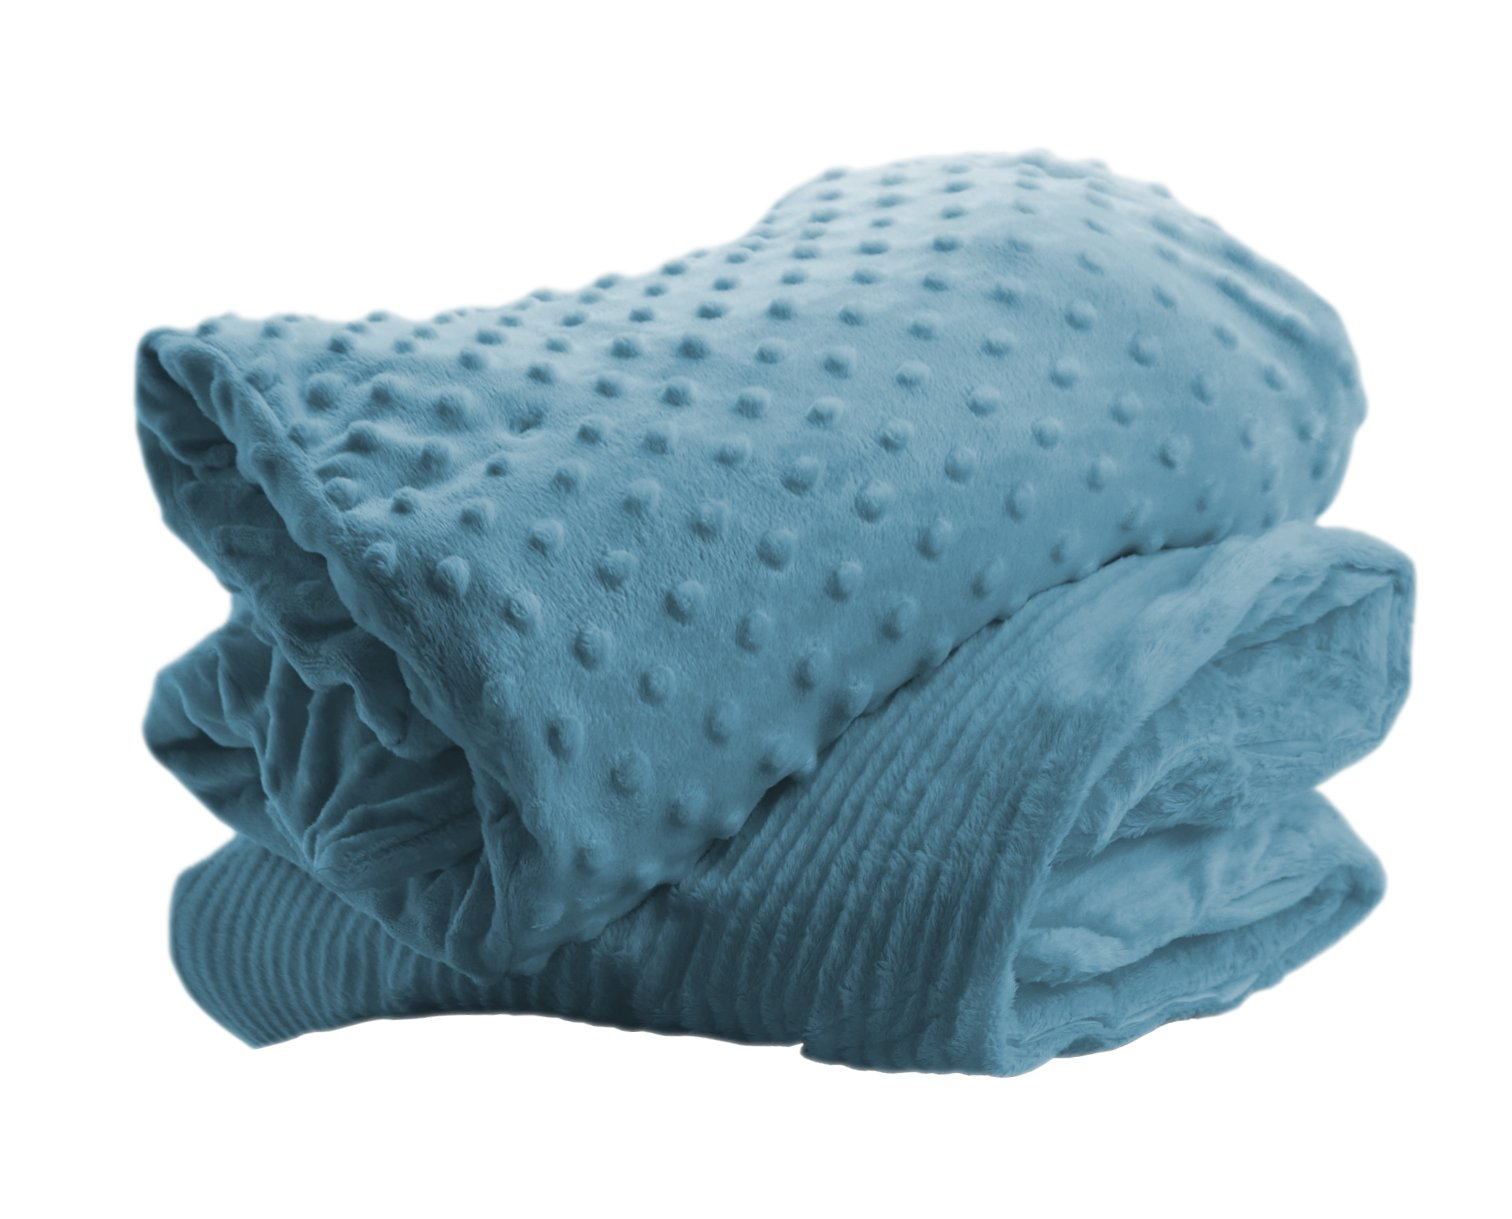 Sensory Blanket - Weighted - 4 Lbs By DH Beacon: Non-Drug Alzheimer Therapy for Dementia Patients, Calming & Relaxing For Depression, Autism, Anxiety & ADHD, Soft, Warm & Comfortable, Machine Washable